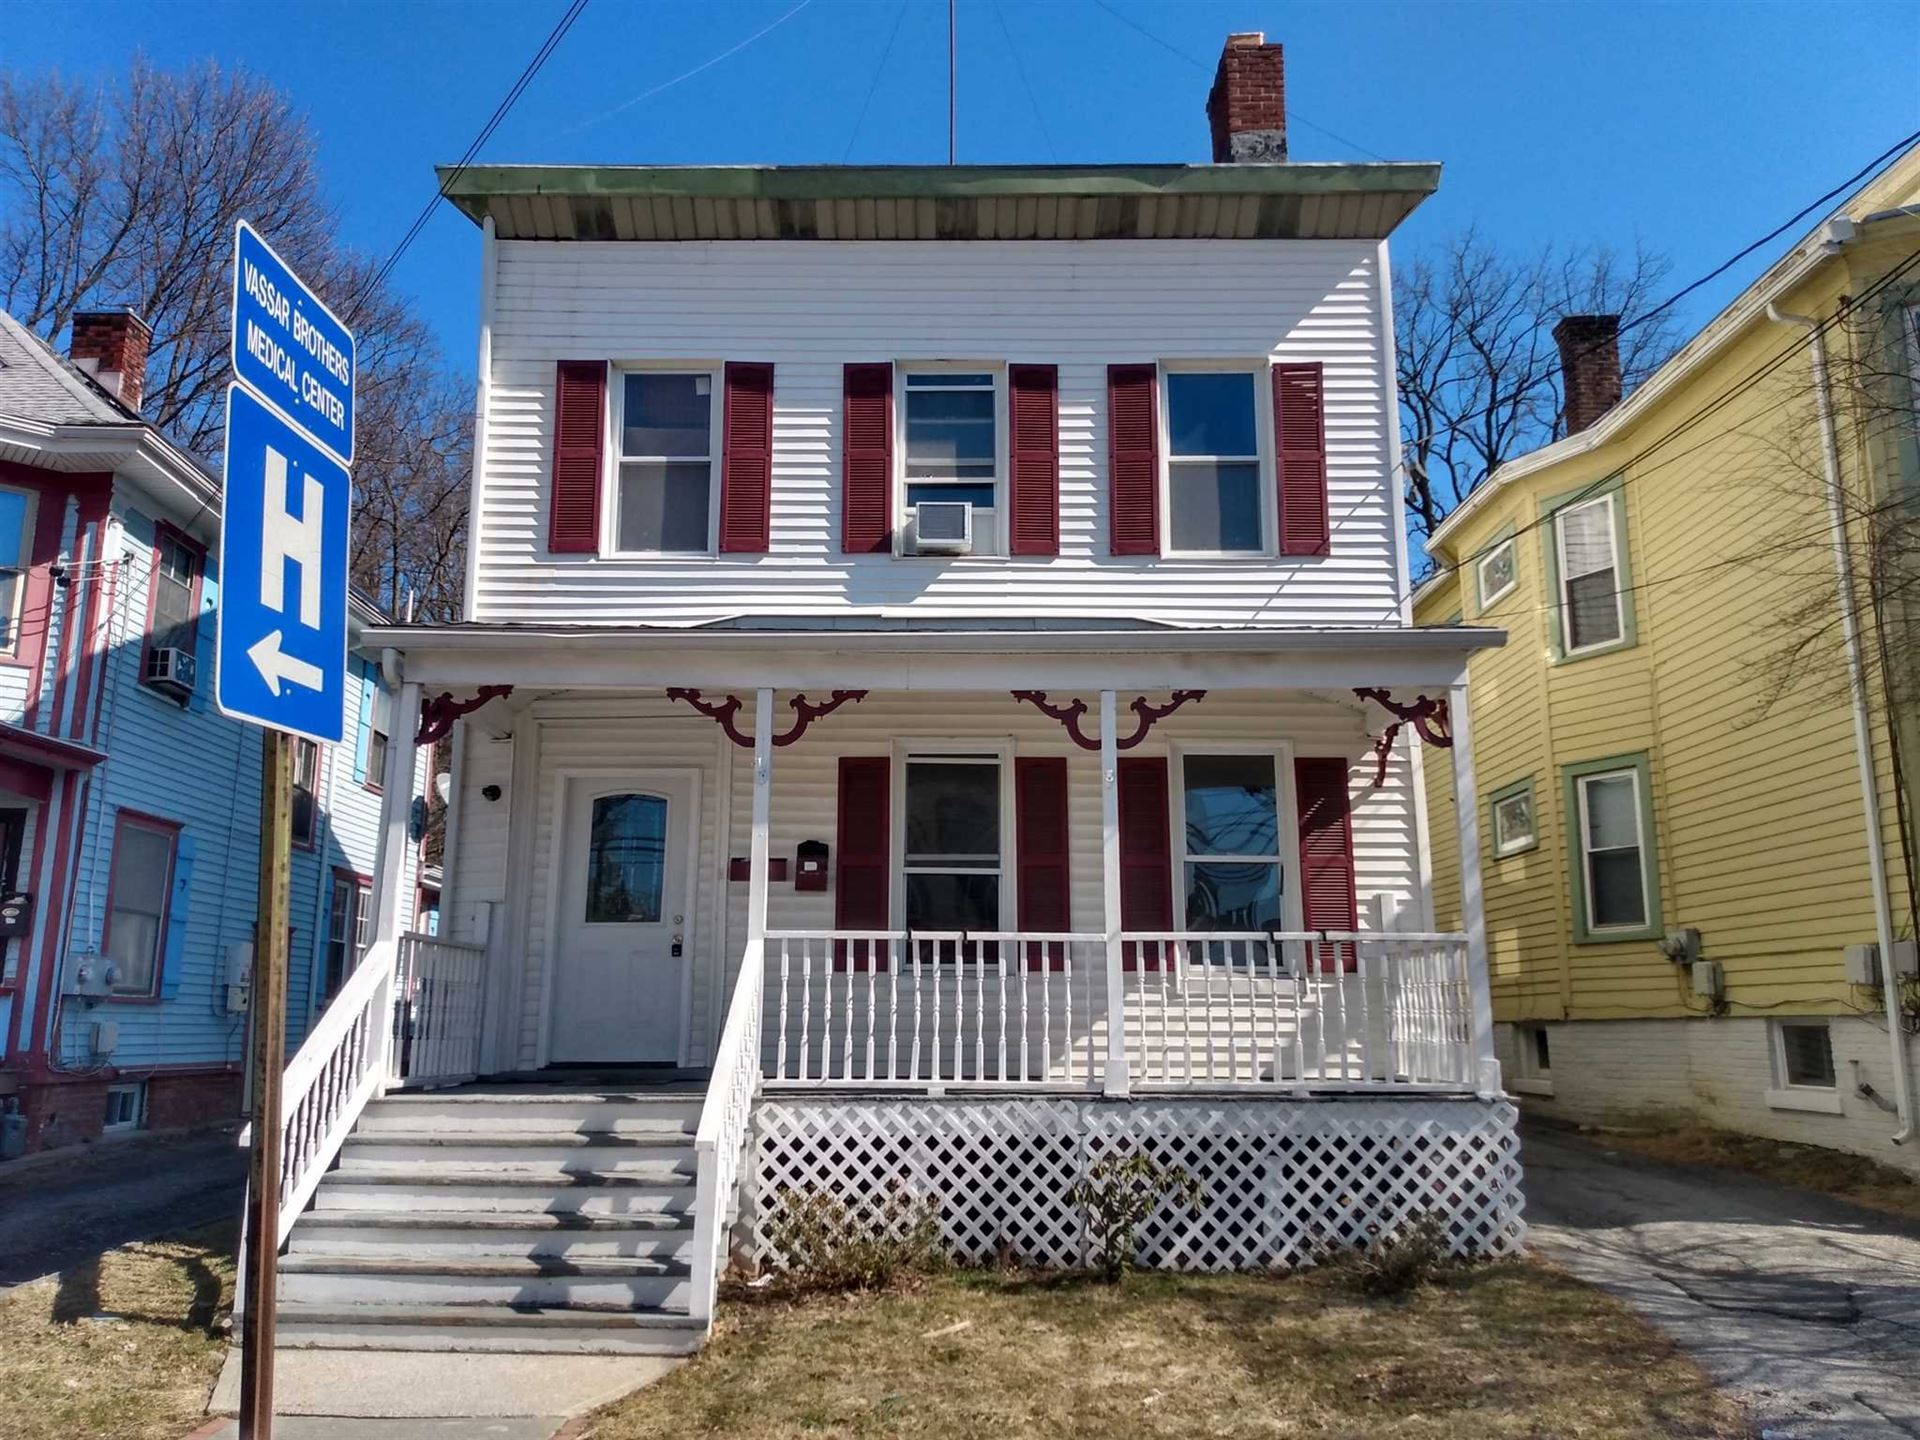 137 SOUTH AVENUE, Poughkeepsie, NY 12601 - #: 399306